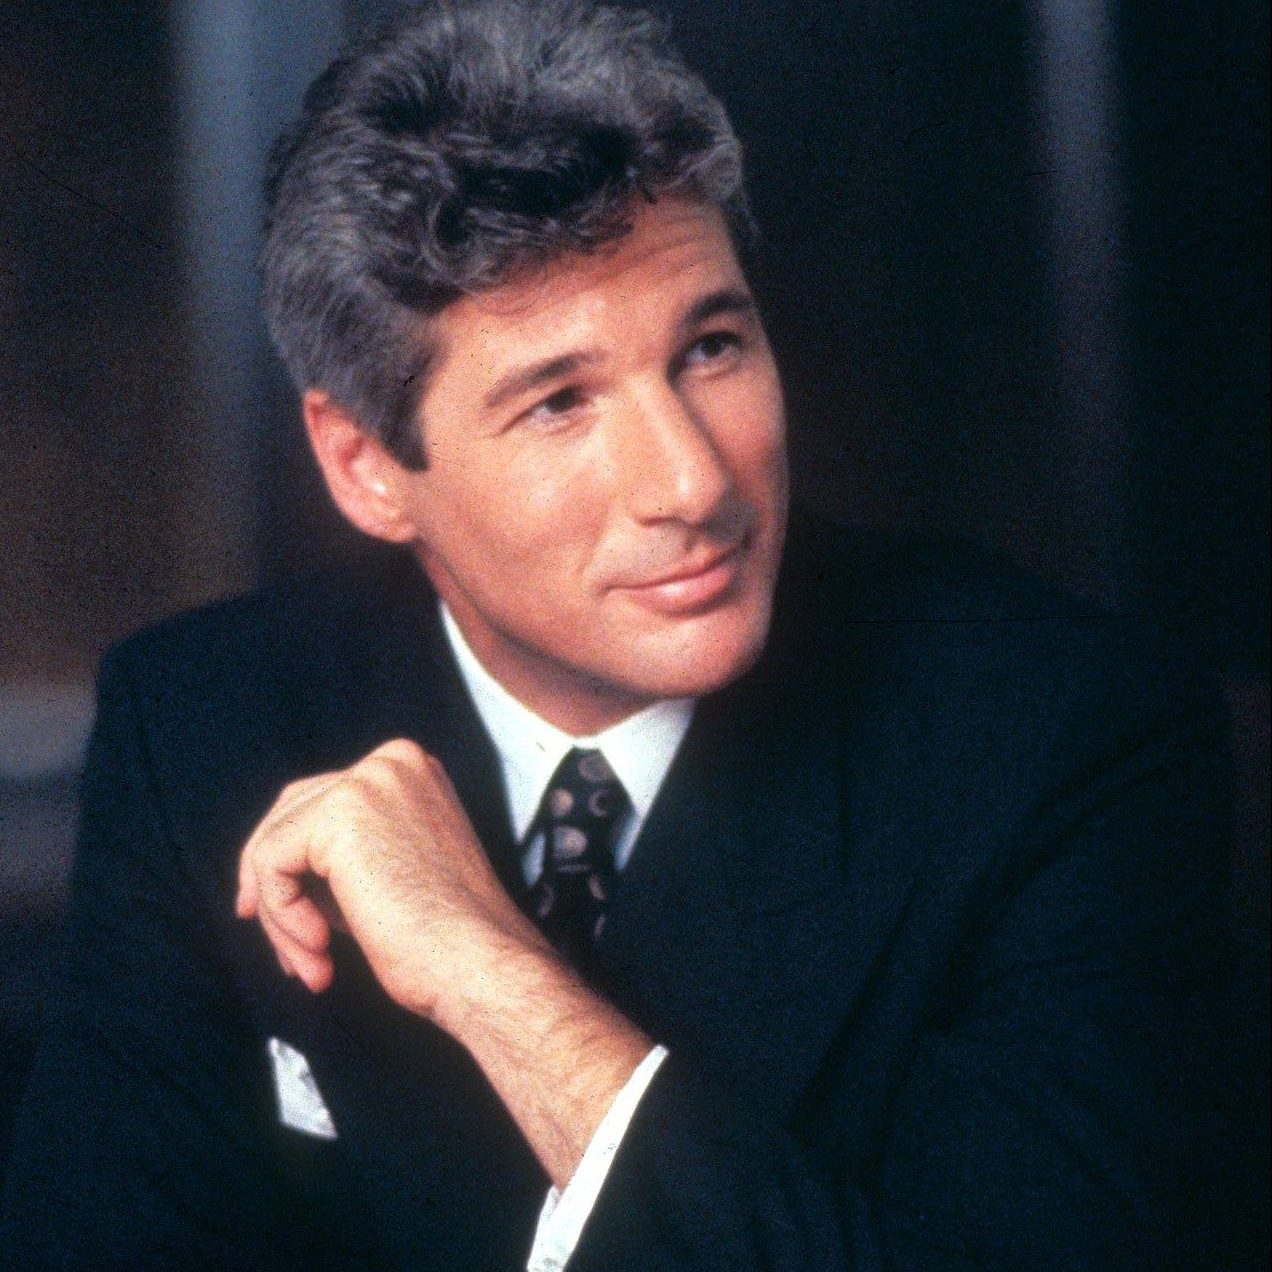 6a1aedec38226299f651a81979378970 e1601896467289 20 Things You Didn't Know About Richard Gere